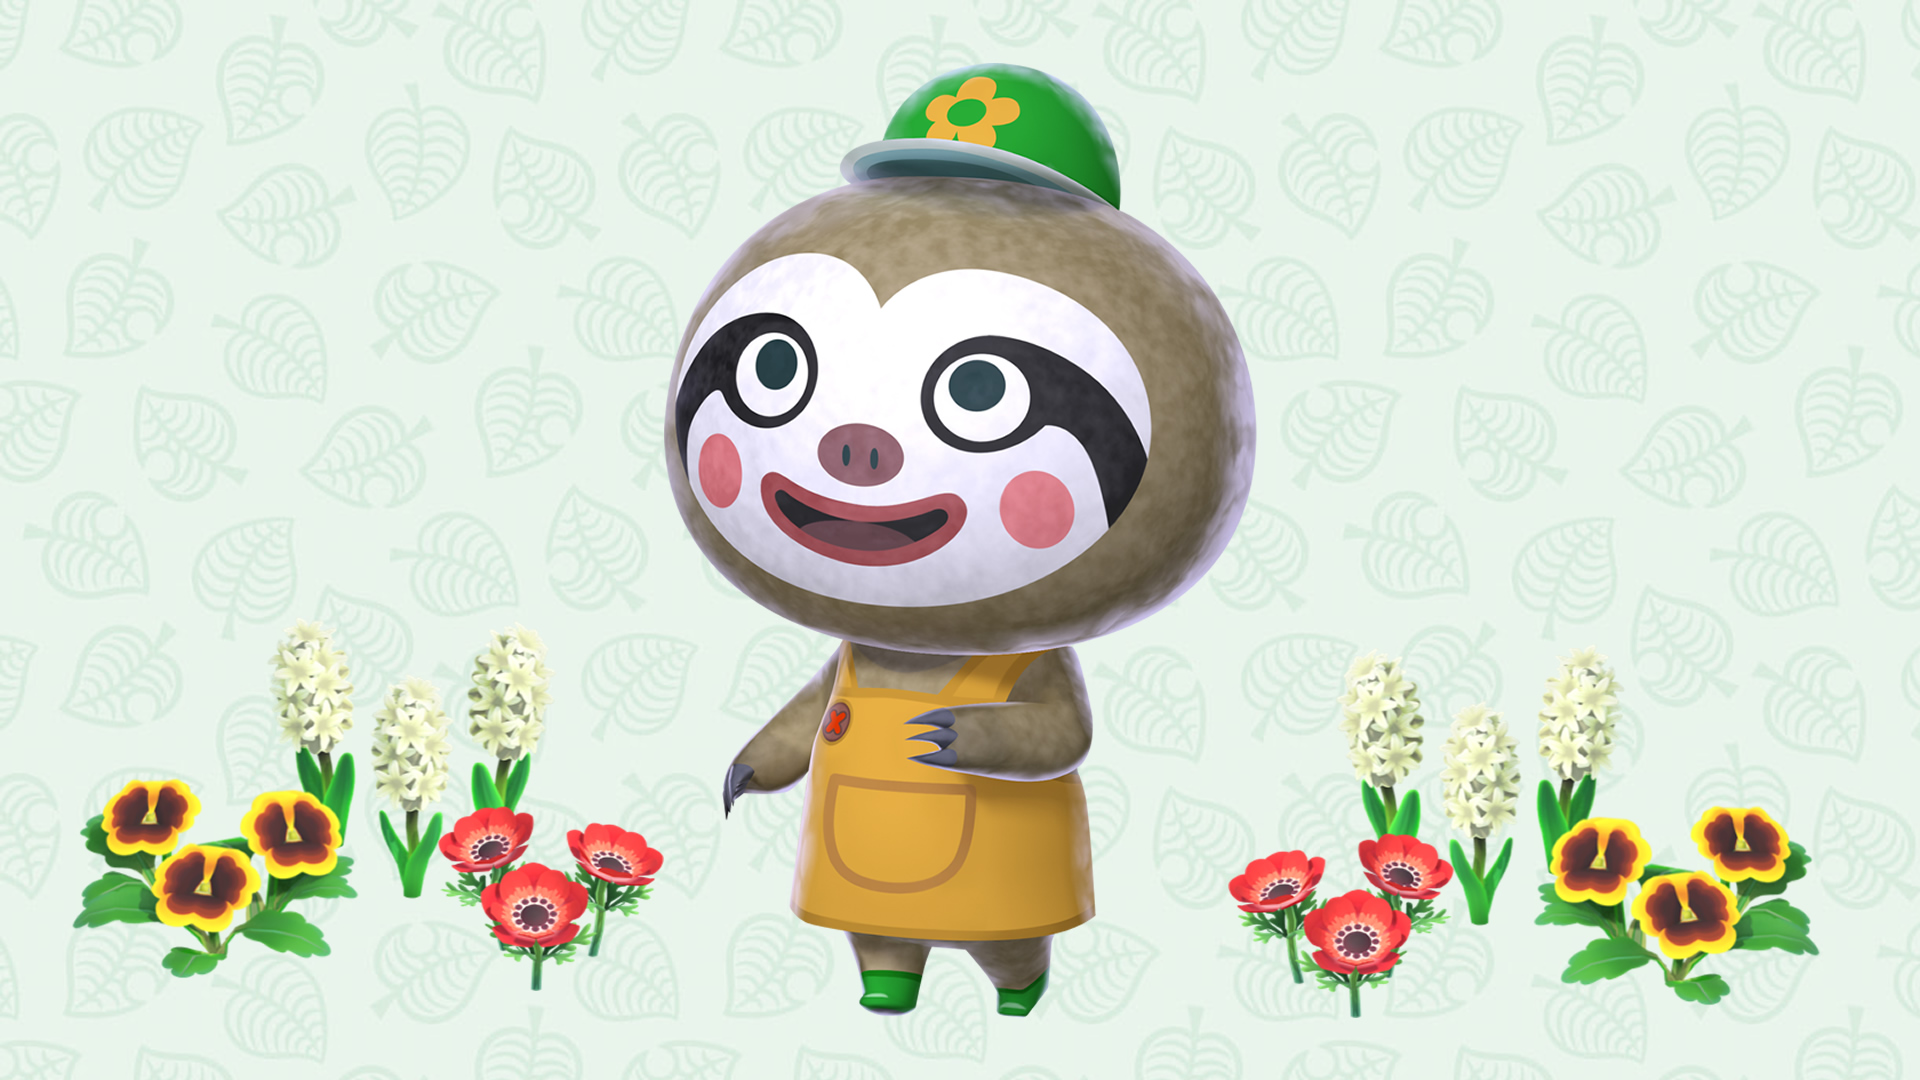 Tomorrow S Animal Crossing Update Will Bring Back Old Characters